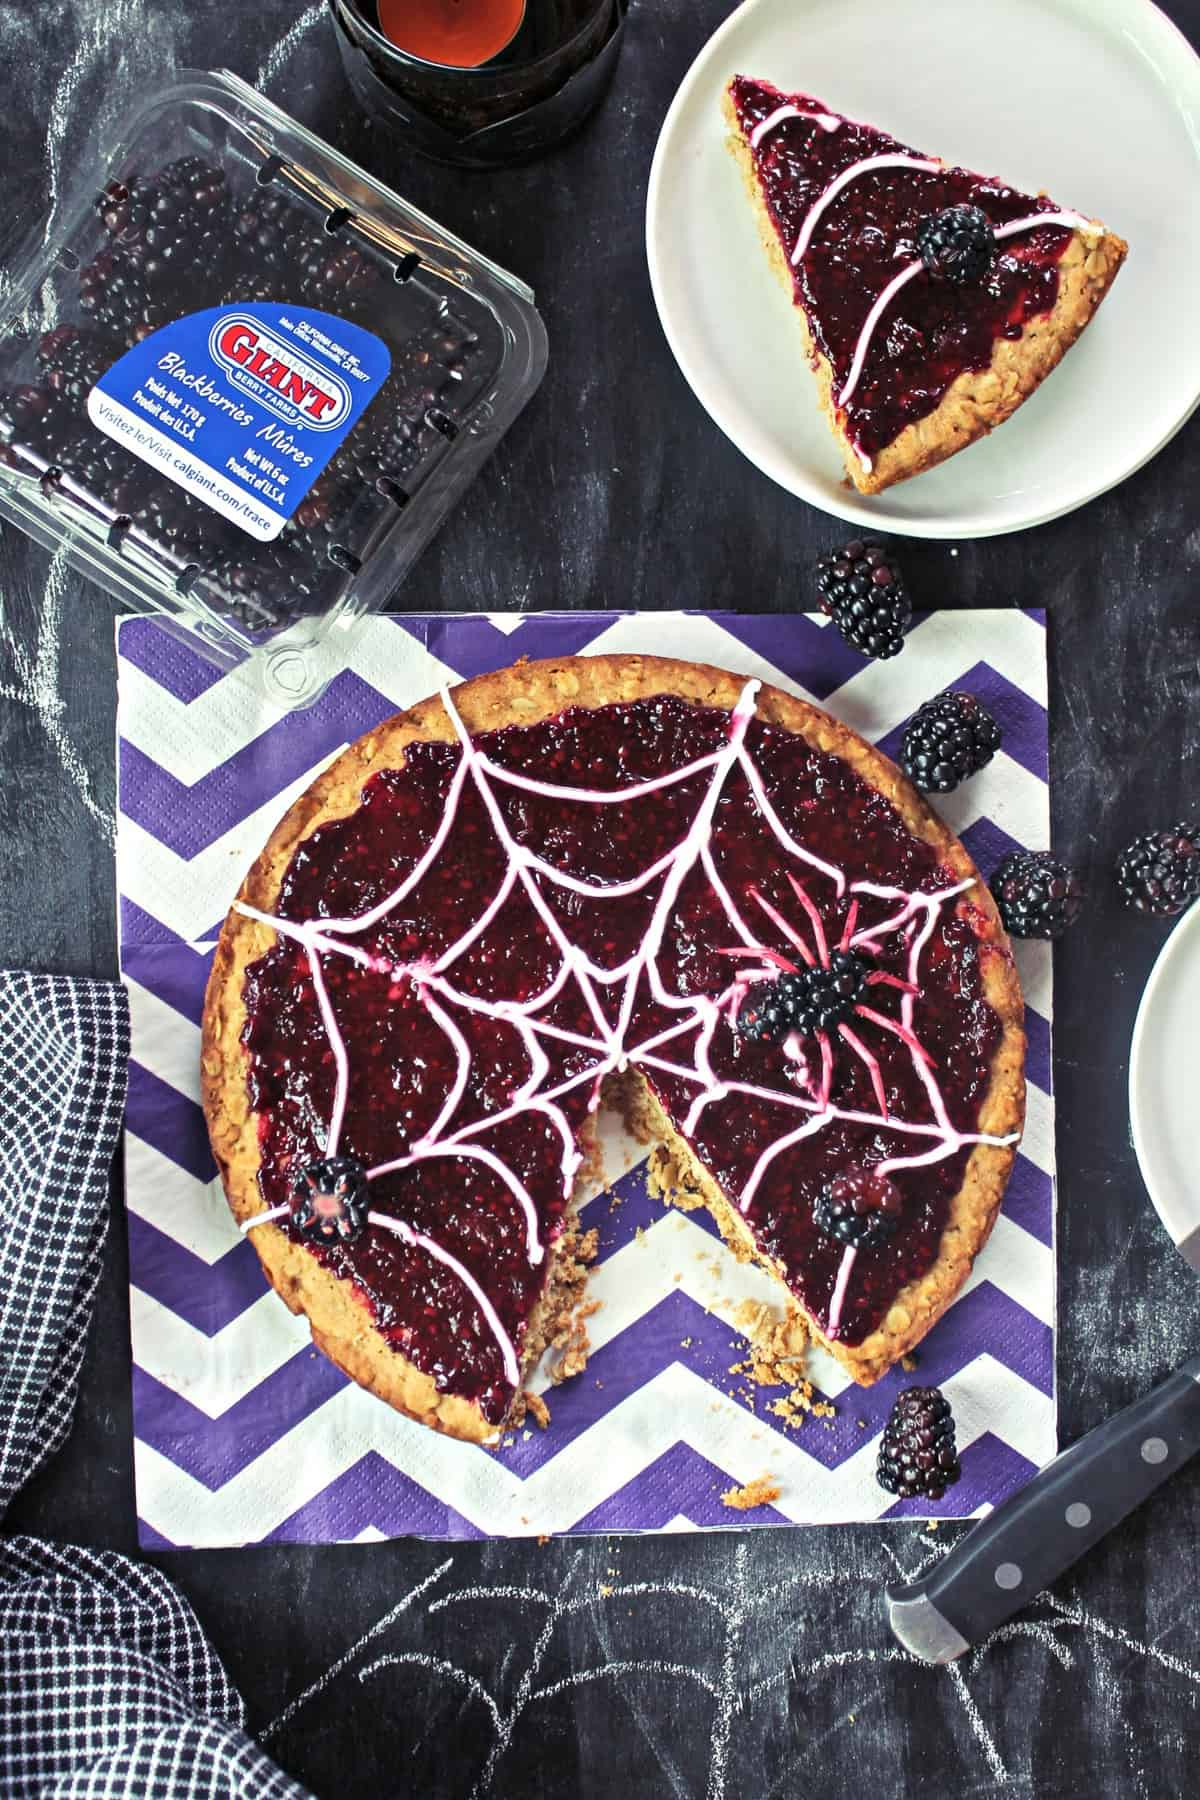 """""""Spider Web"""" Blackberry Dessert Pizza! Looking for a sweet, spooky snack with a little less sugar? This creepy-crawly dessert is honey-sweetened & topped with fresh blackberries for a treat without the sugar rush!"""